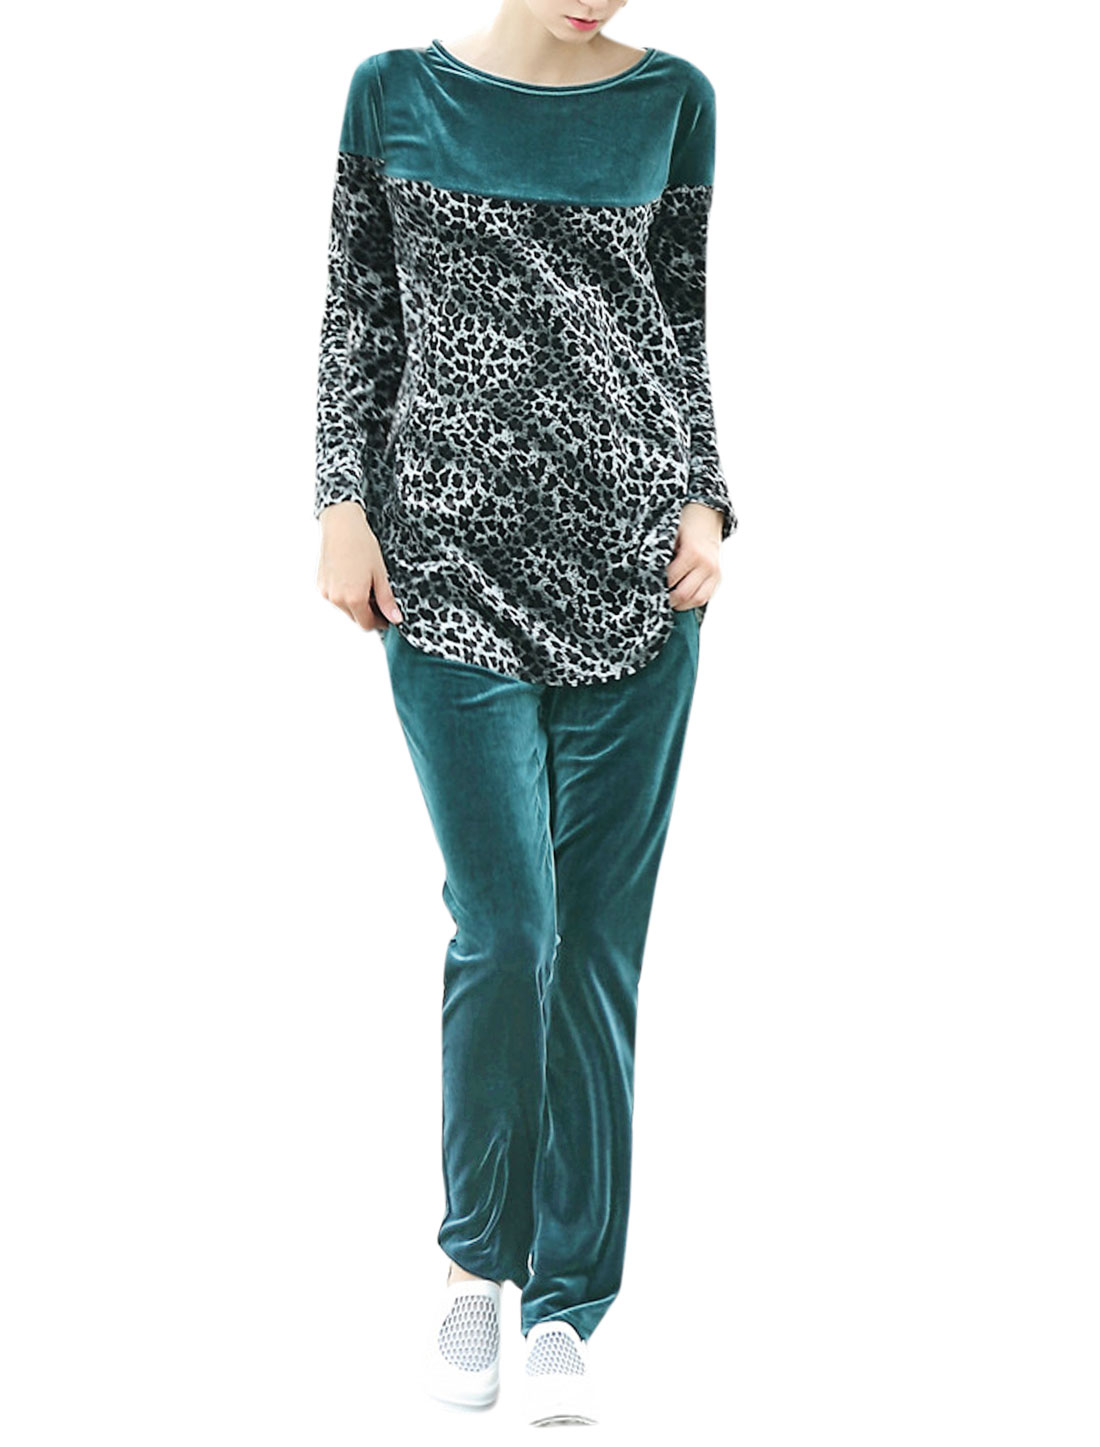 Women Long Sleeves Leopard Pattern Velvet Loose Tunic Top w Pants Sets Green M